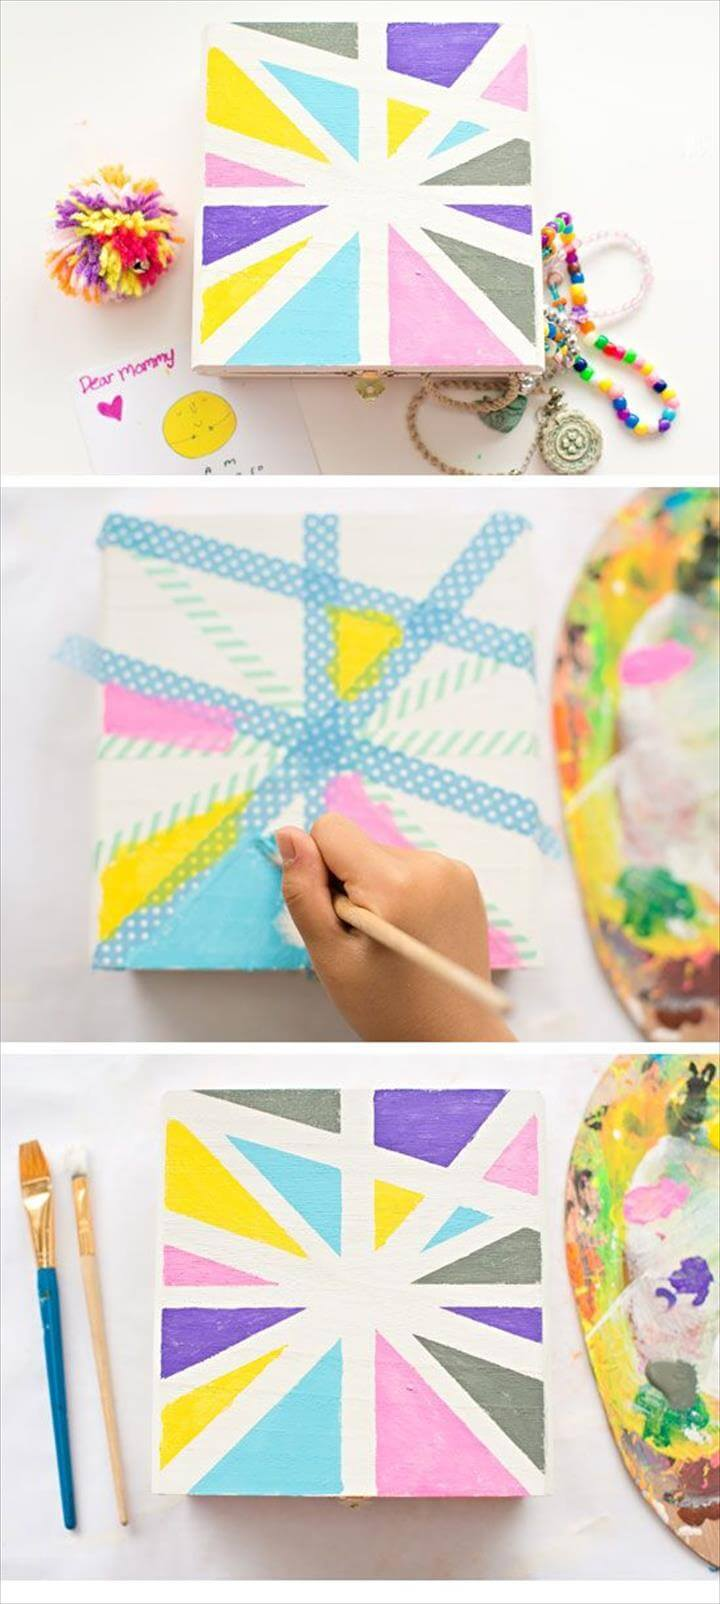 Diy Birthday Gifts For Mom, Diy Mothers Day Gifts, Mothers Day Crafts For Kids, Diy Bday Gifts For Mom, Awesome Birthday Gifts, Diy Birthday Box, Grandma Birthday, Easy Mother's Day Crafts, Crafts For Kids To Make,